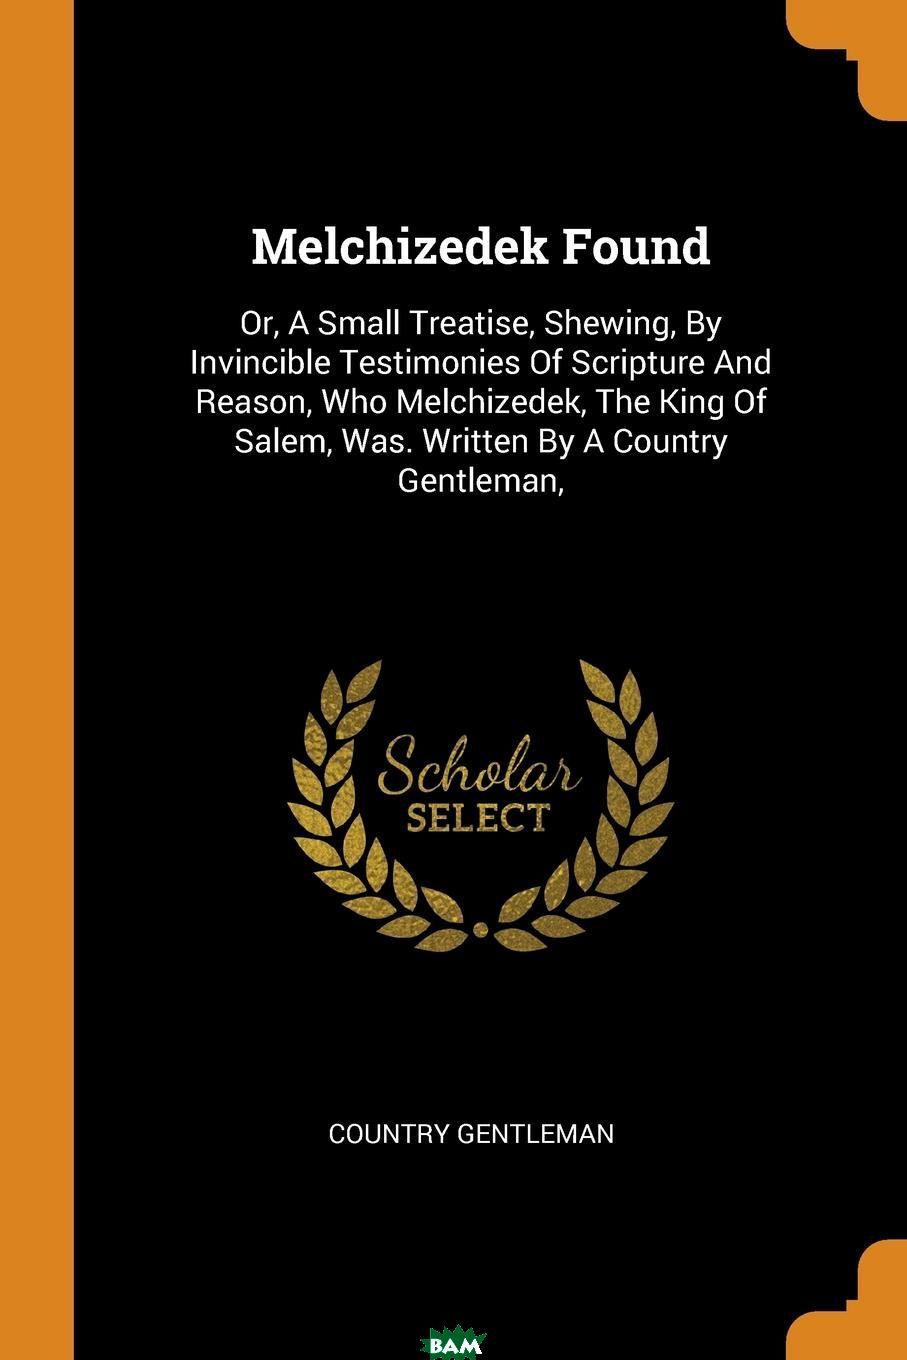 Купить Melchizedek Found. Or, A Small Treatise, Shewing, By Invincible Testimonies Of Scripture And Reason, Who Melchizedek, The King Of Salem, Was. Written By A Country Gentleman, , 9780353319684